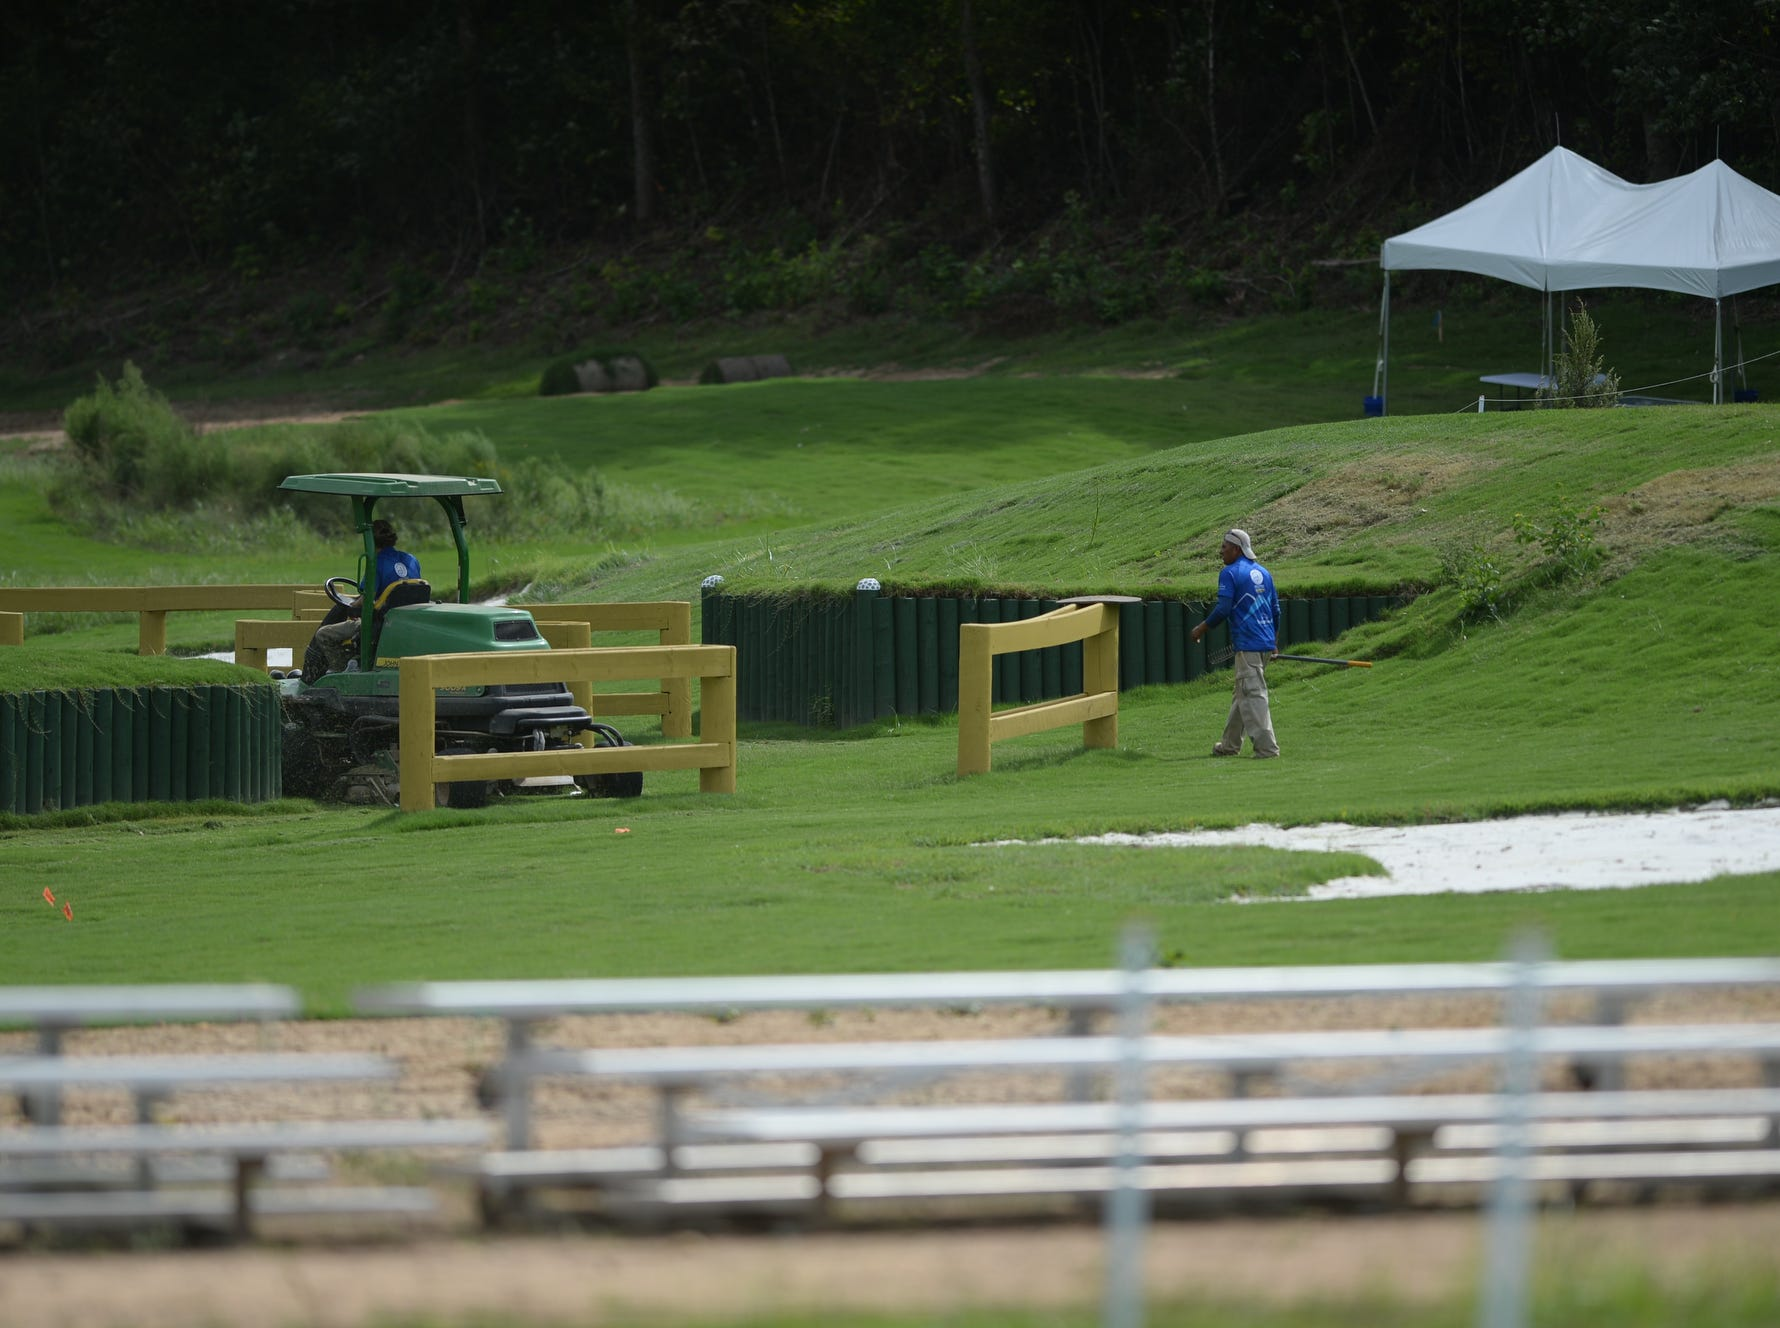 Crews work to ready the cross country course the day before the competition at the World Equestrian Games in Tryon Sept. 14, 2018.